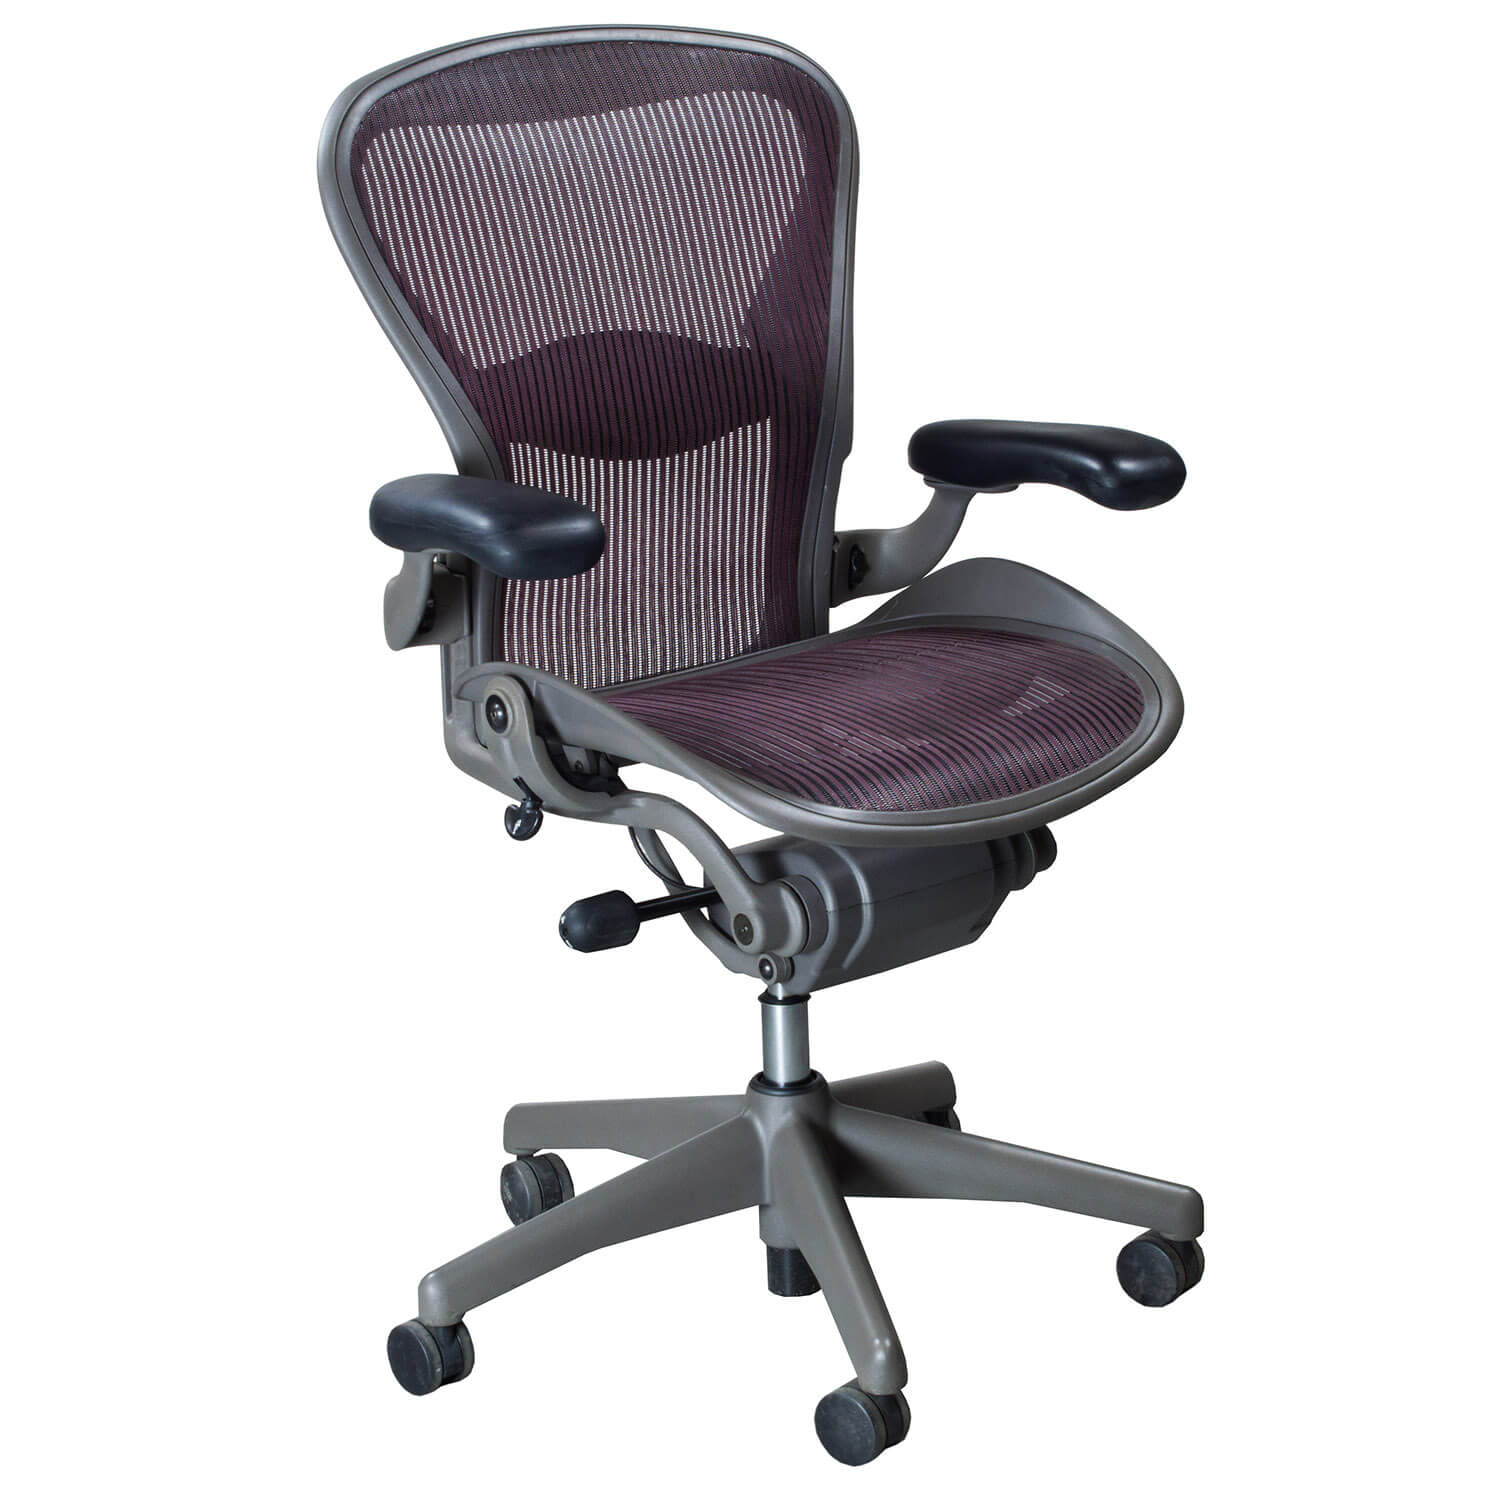 Used Office Chairs For Sale - Aeron Size B Used Office Furniture For Sale